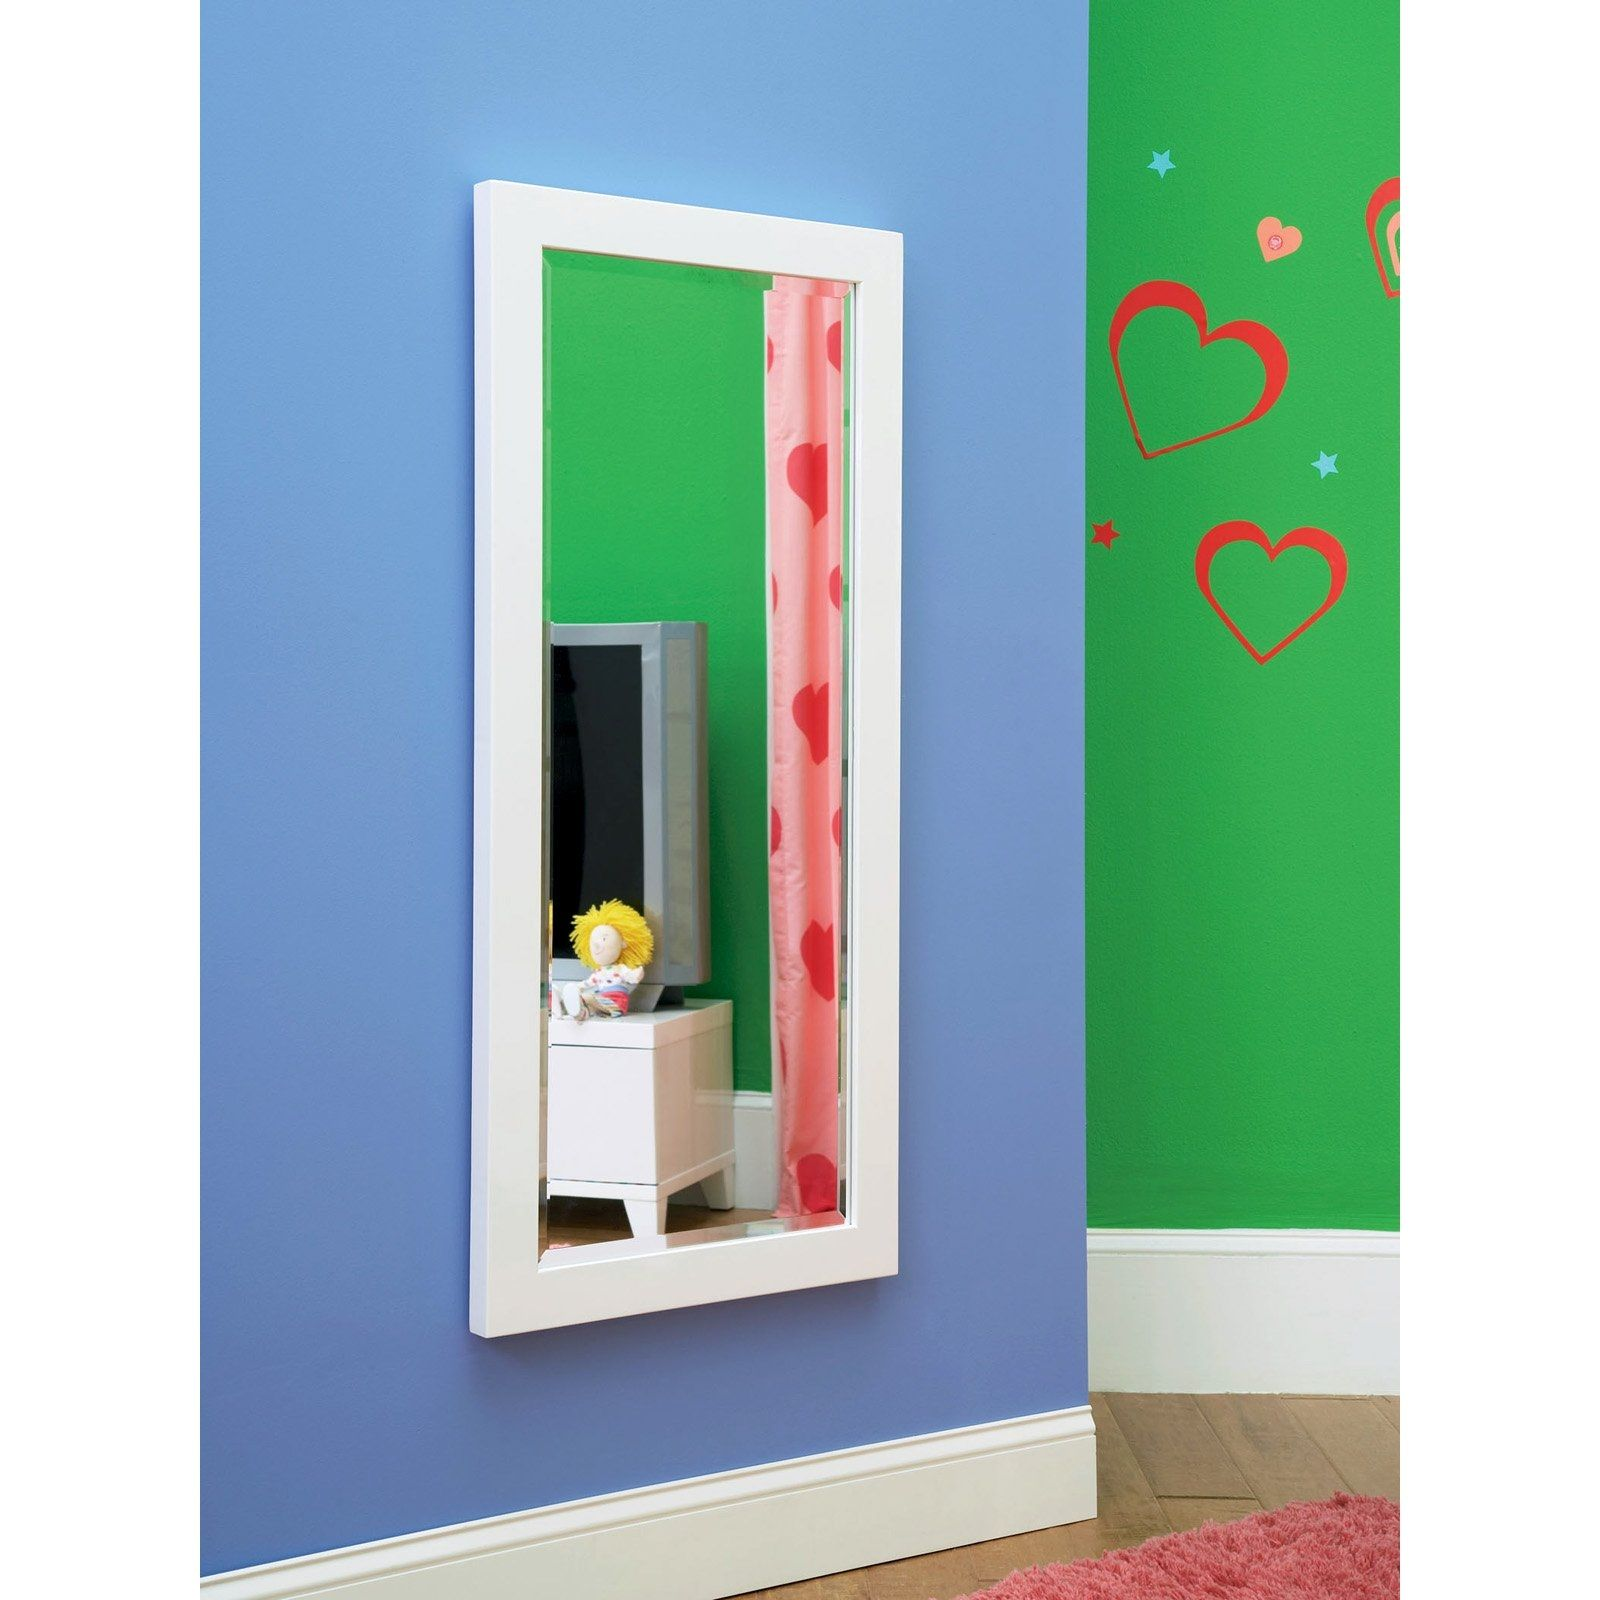 Wall Mirrors For ChildrenS Bedroom | http://drrw.us | Pinterest ...